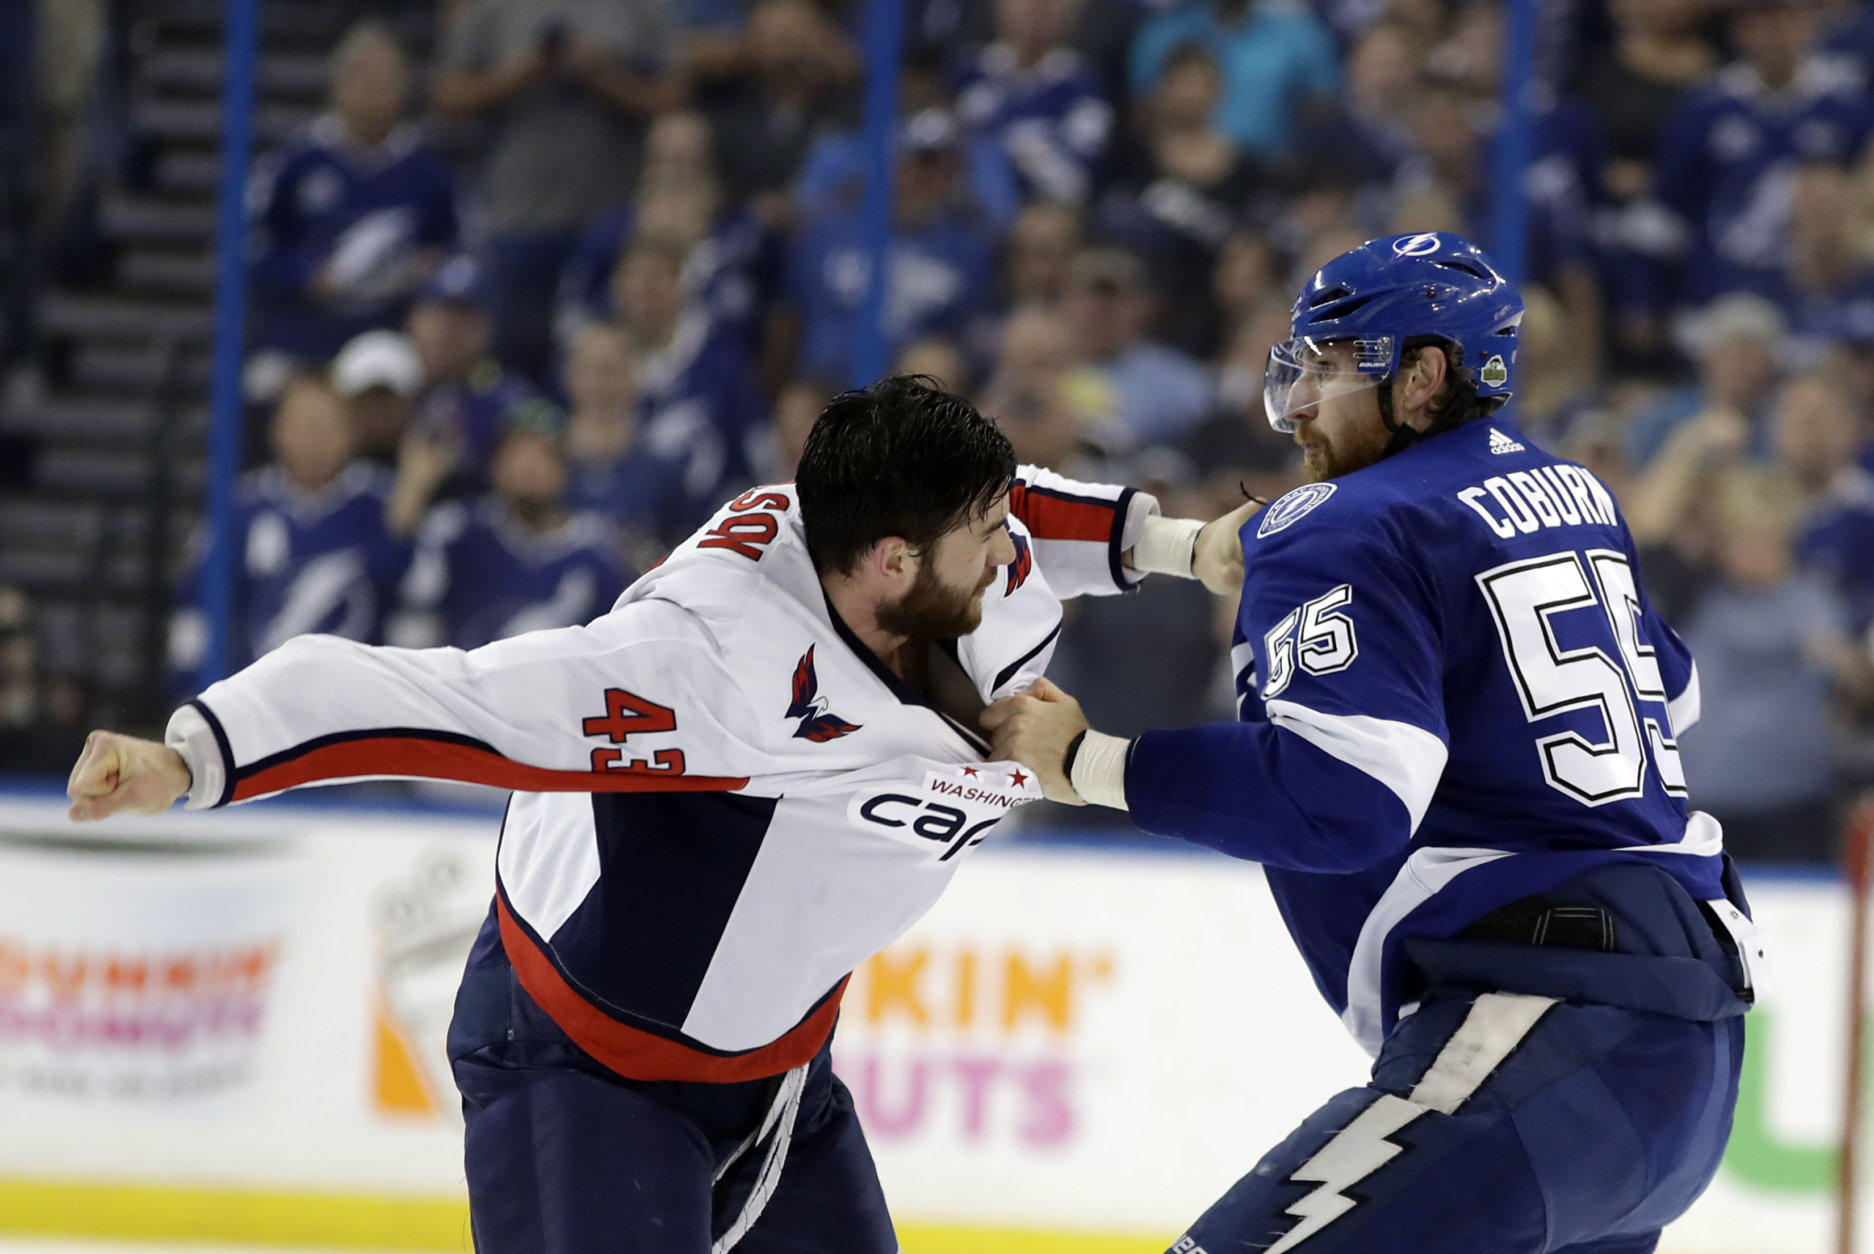 Tampa Bay Lightning defenseman Braydon Coburn, left, and Washington Capitals right wing Tom Wilson (43) fight during the first period of Game 7 of the NHL Eastern Conference finals hockey playoff series Wednesday, May 23, 2018, in Tampa, Fla. (AP Photo/Chris O'Meara)